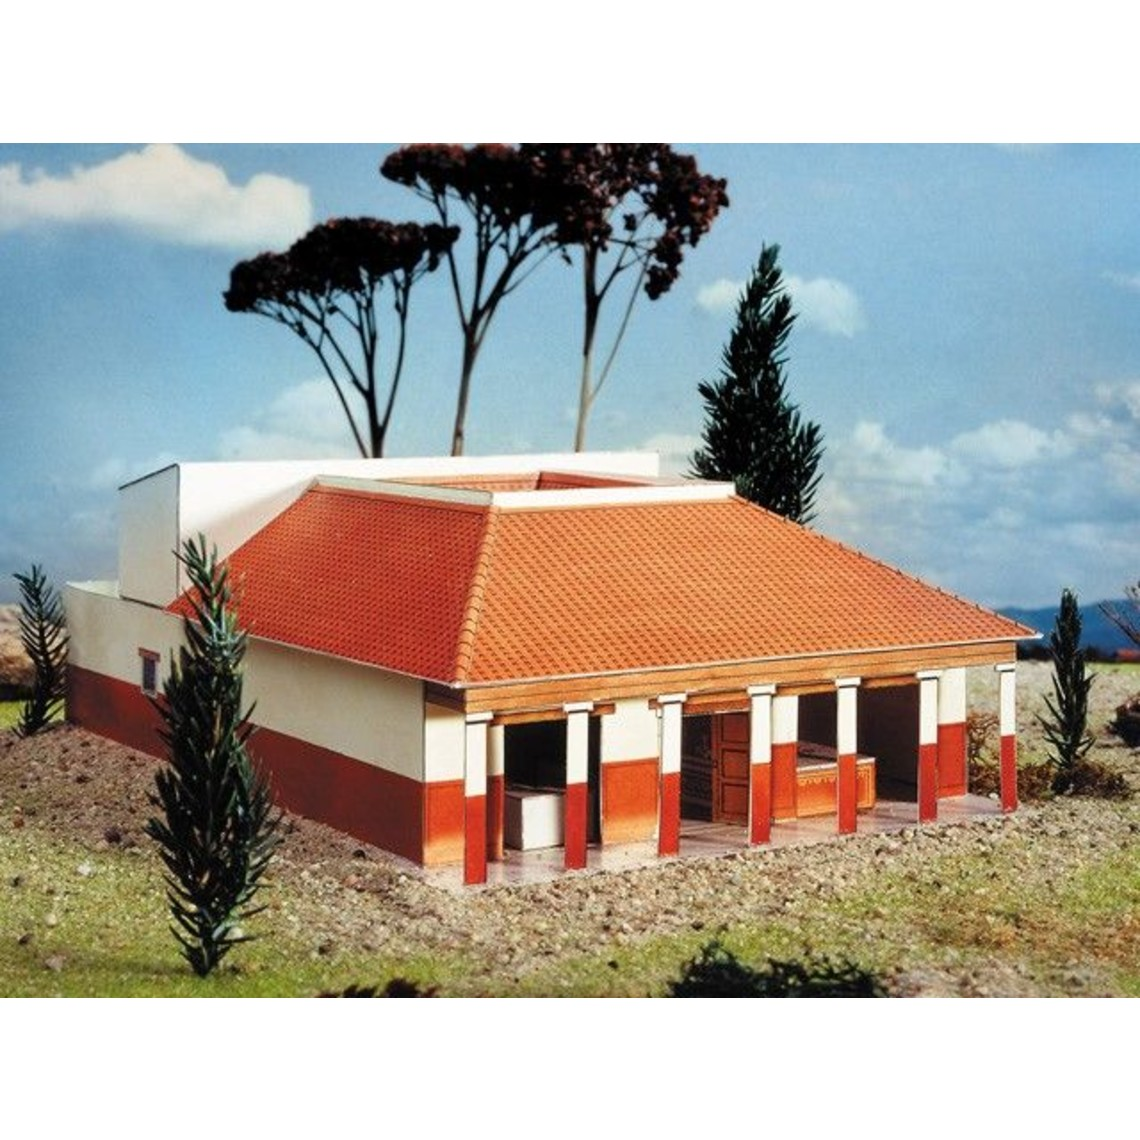 Model kit budynek Roman Villa